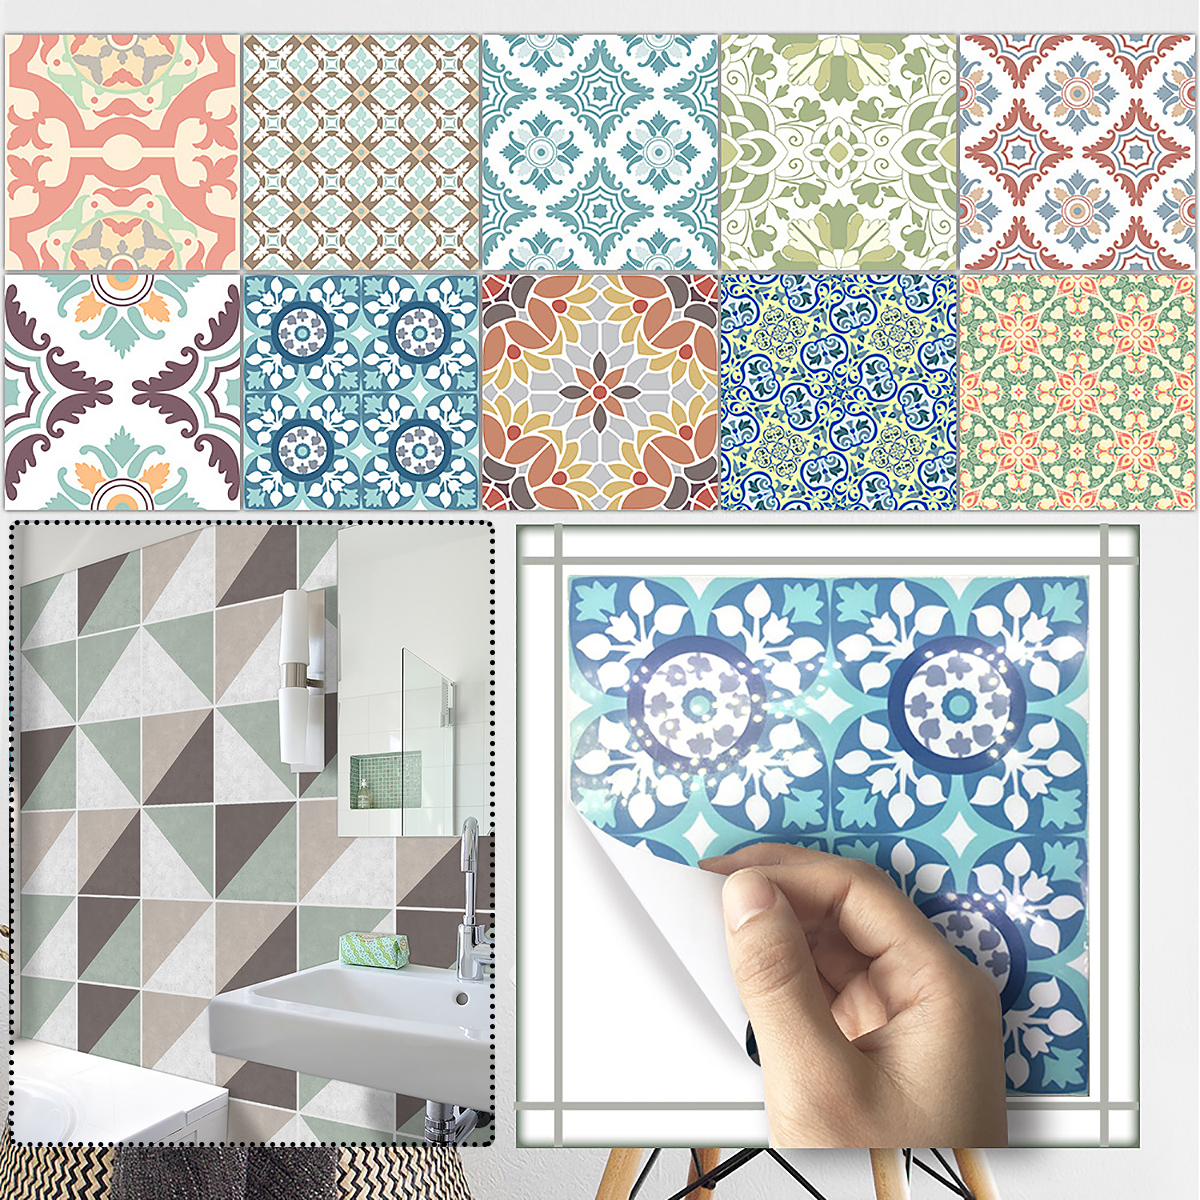 Moroccan Style Tile Wall Stickers Kitchen Bathroom Self-Adhesive Mosaic Decor